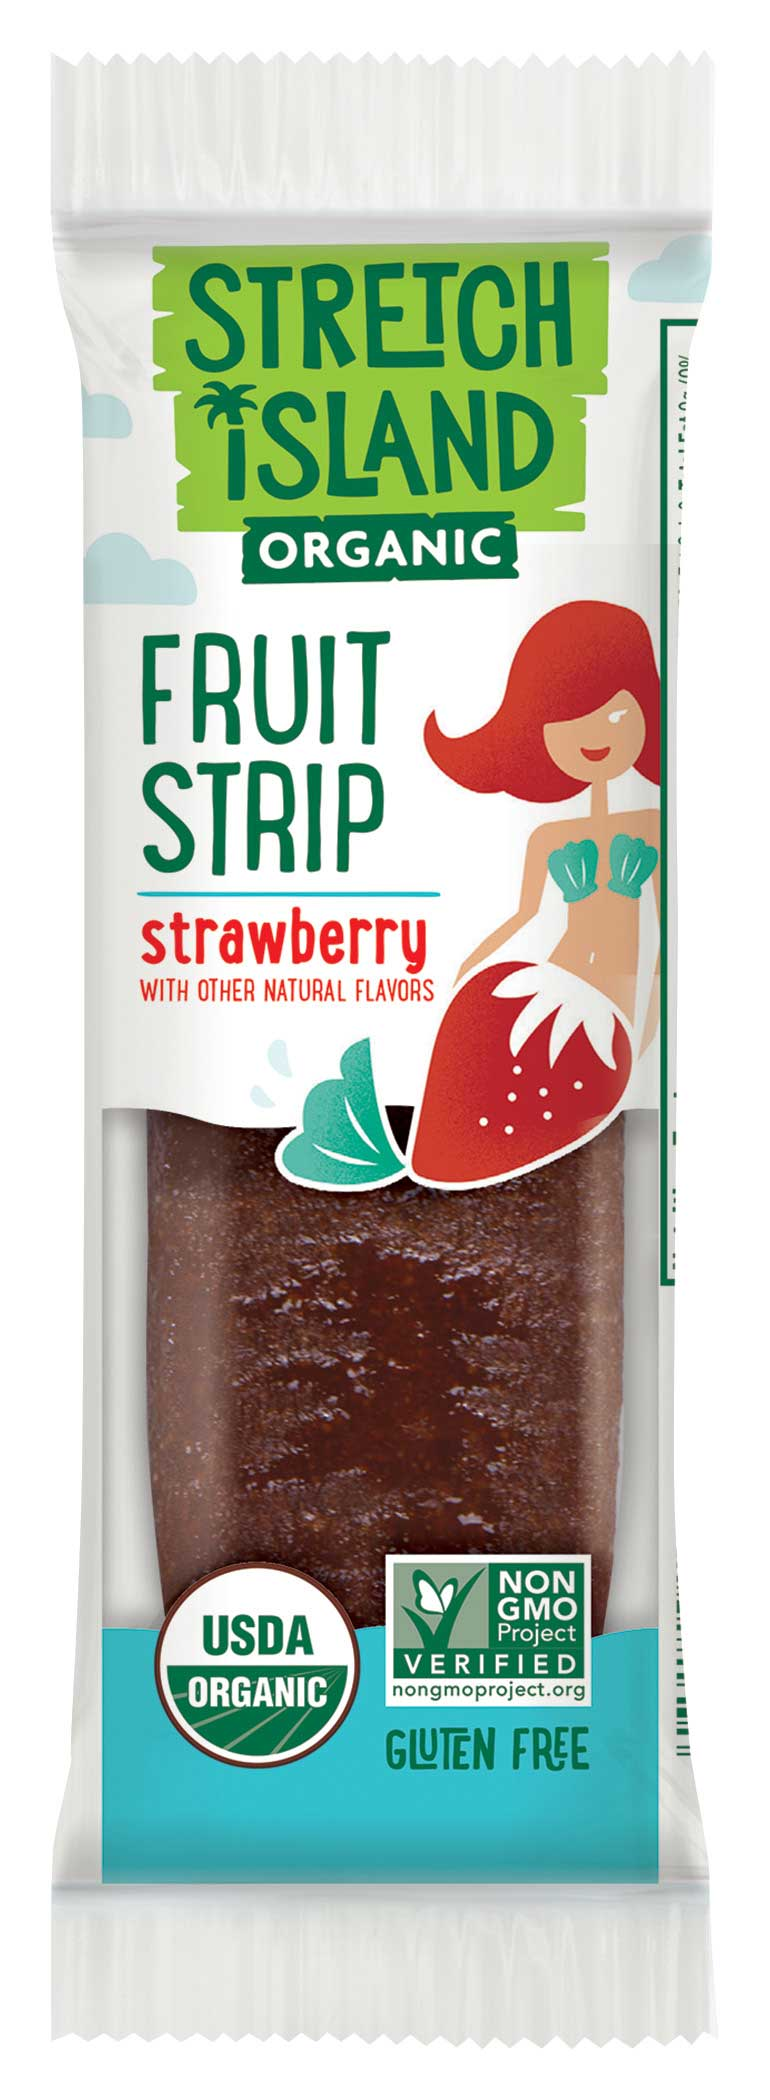 Healthy Office Snacks, Stretch Island Fruit Leather – Strawberry